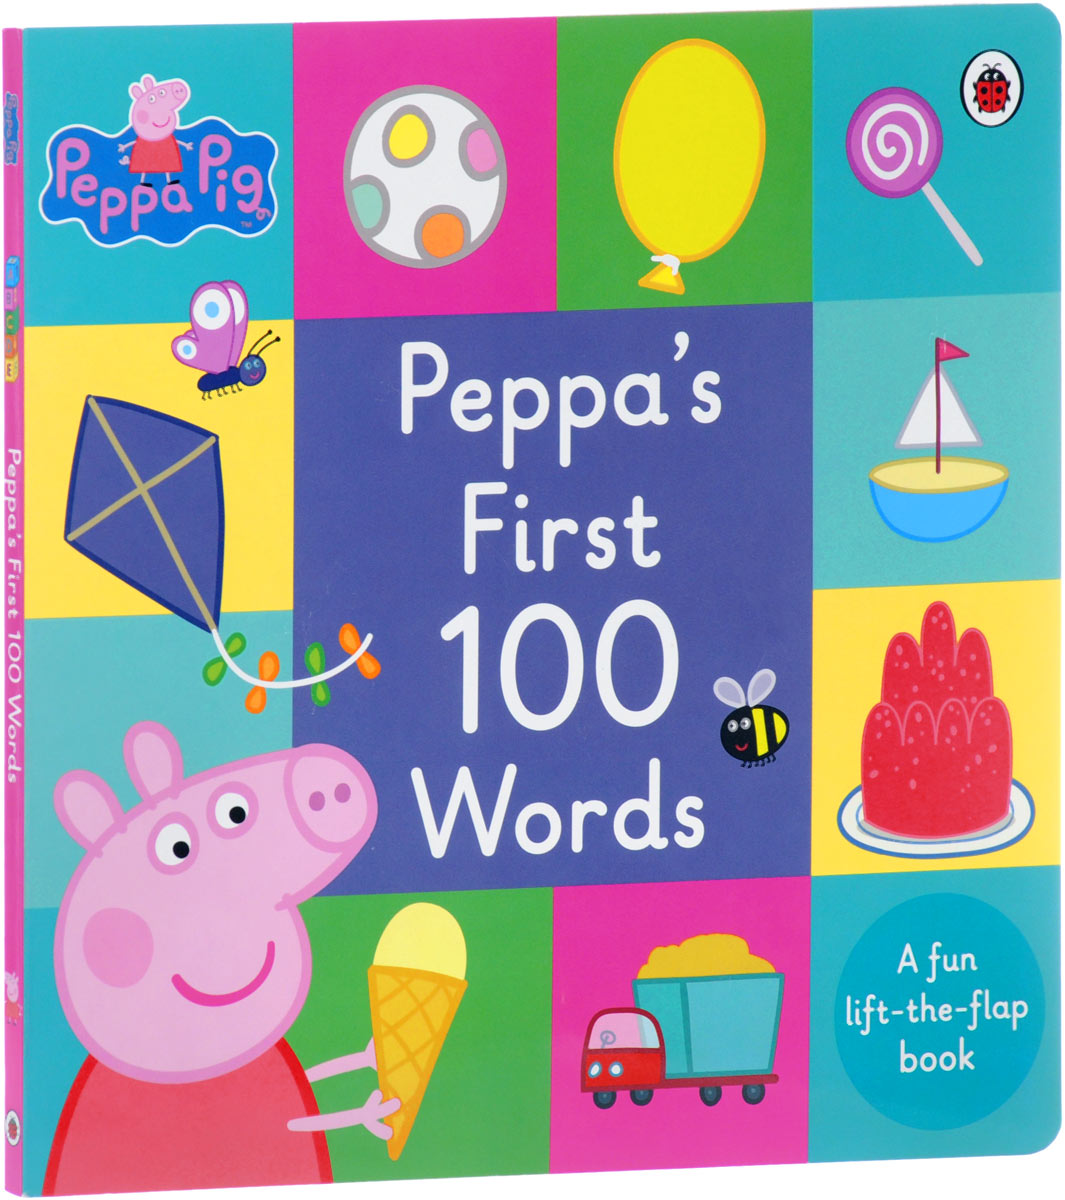 Peppa Pig: Peppa's First 100 Words peppa pig 1000 first words sticker book